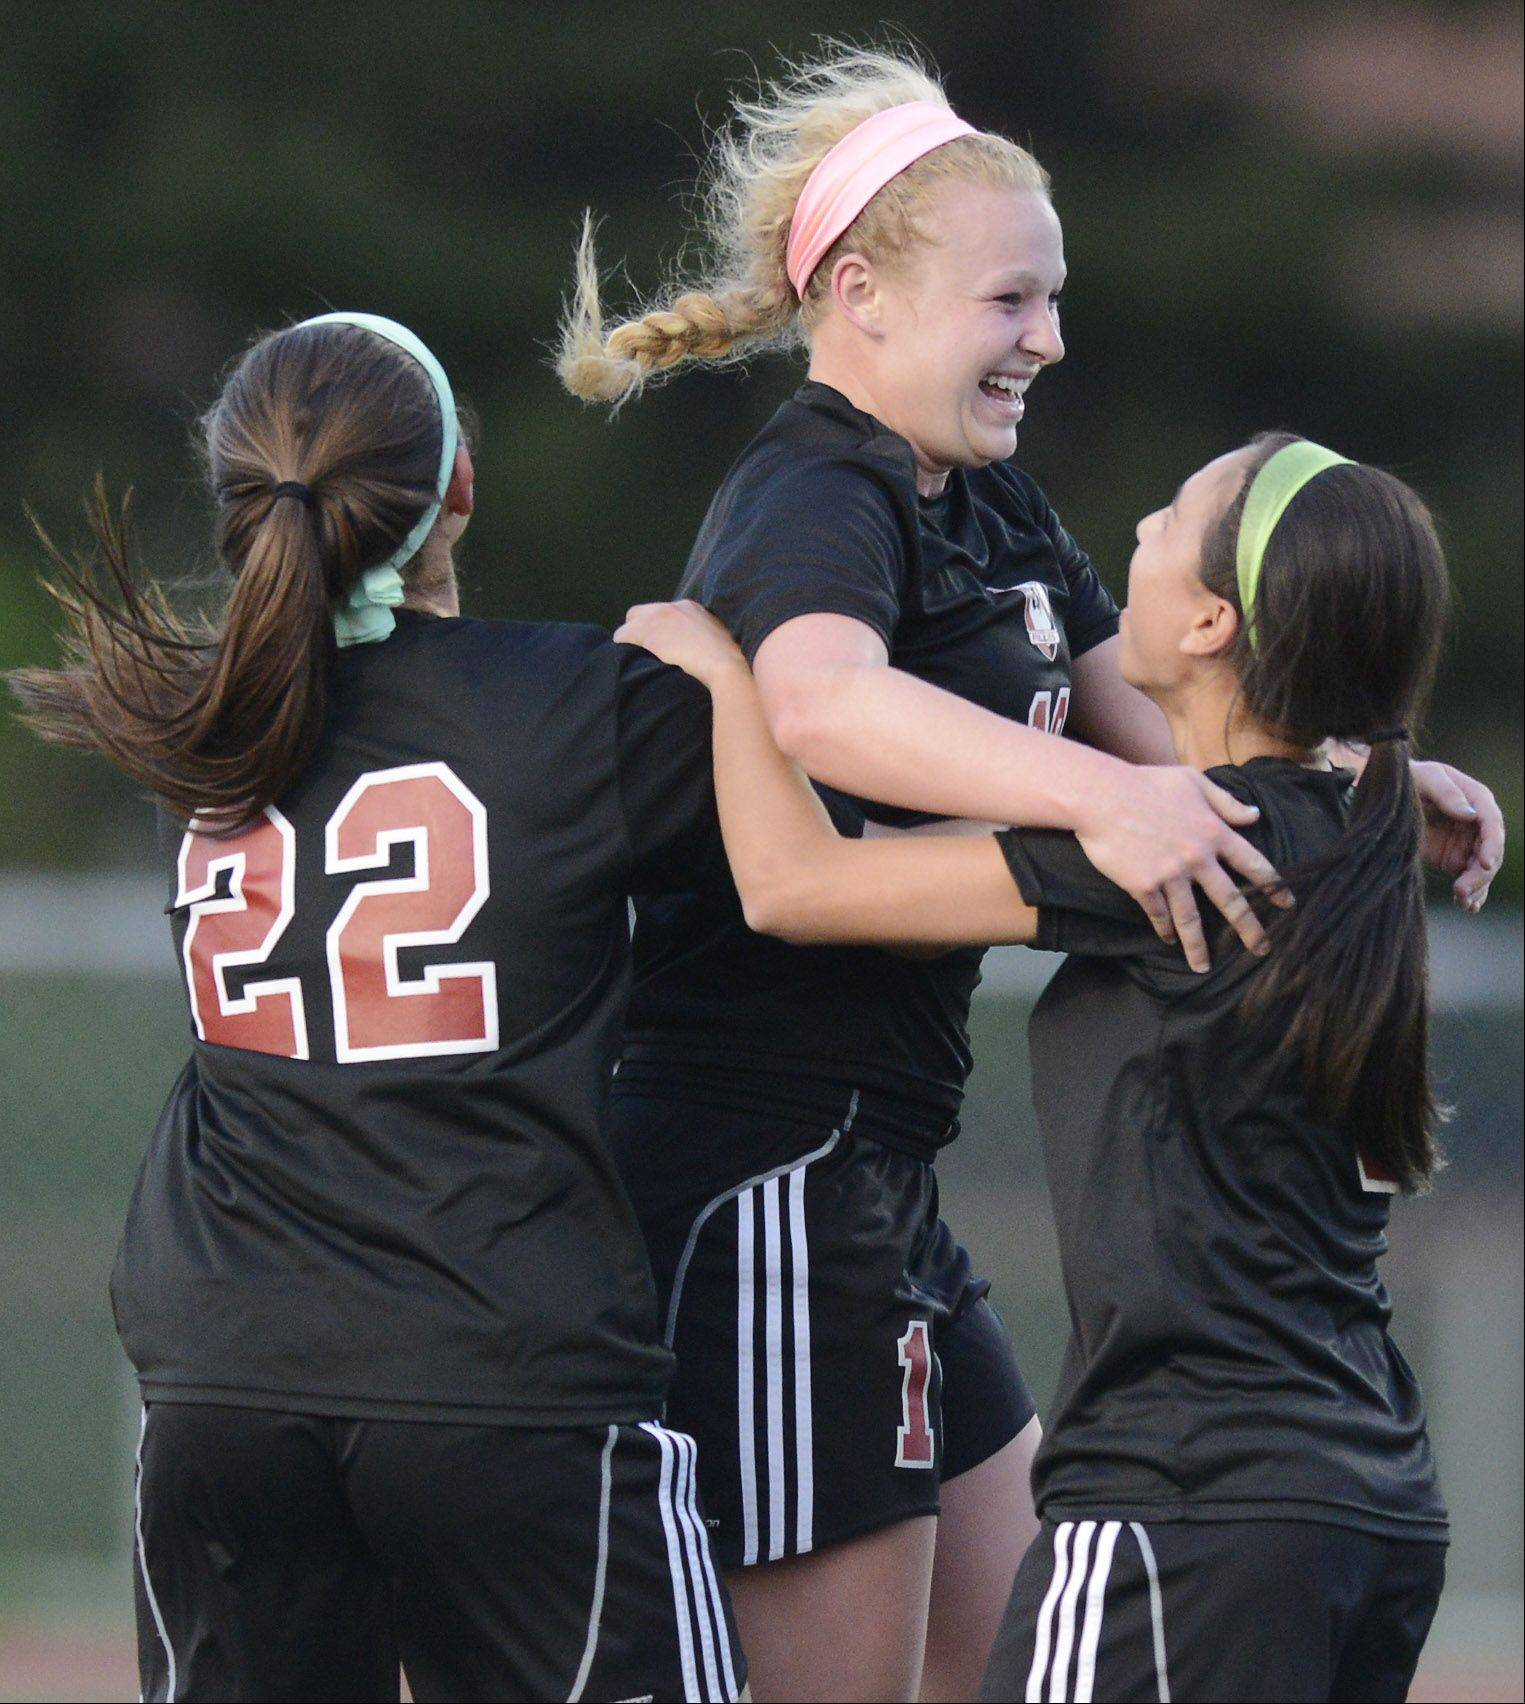 Barrington�s Molly Pfeiffer, middle, celebrates her first-half goal with teammates Elli Ackerman, left, and Aimee Pierce during Wednesday�s Mid-Suburban League championship game at Buffalo Grove. Pfeiffer had an assist on the game�s second goal as Barrington won 2-0.